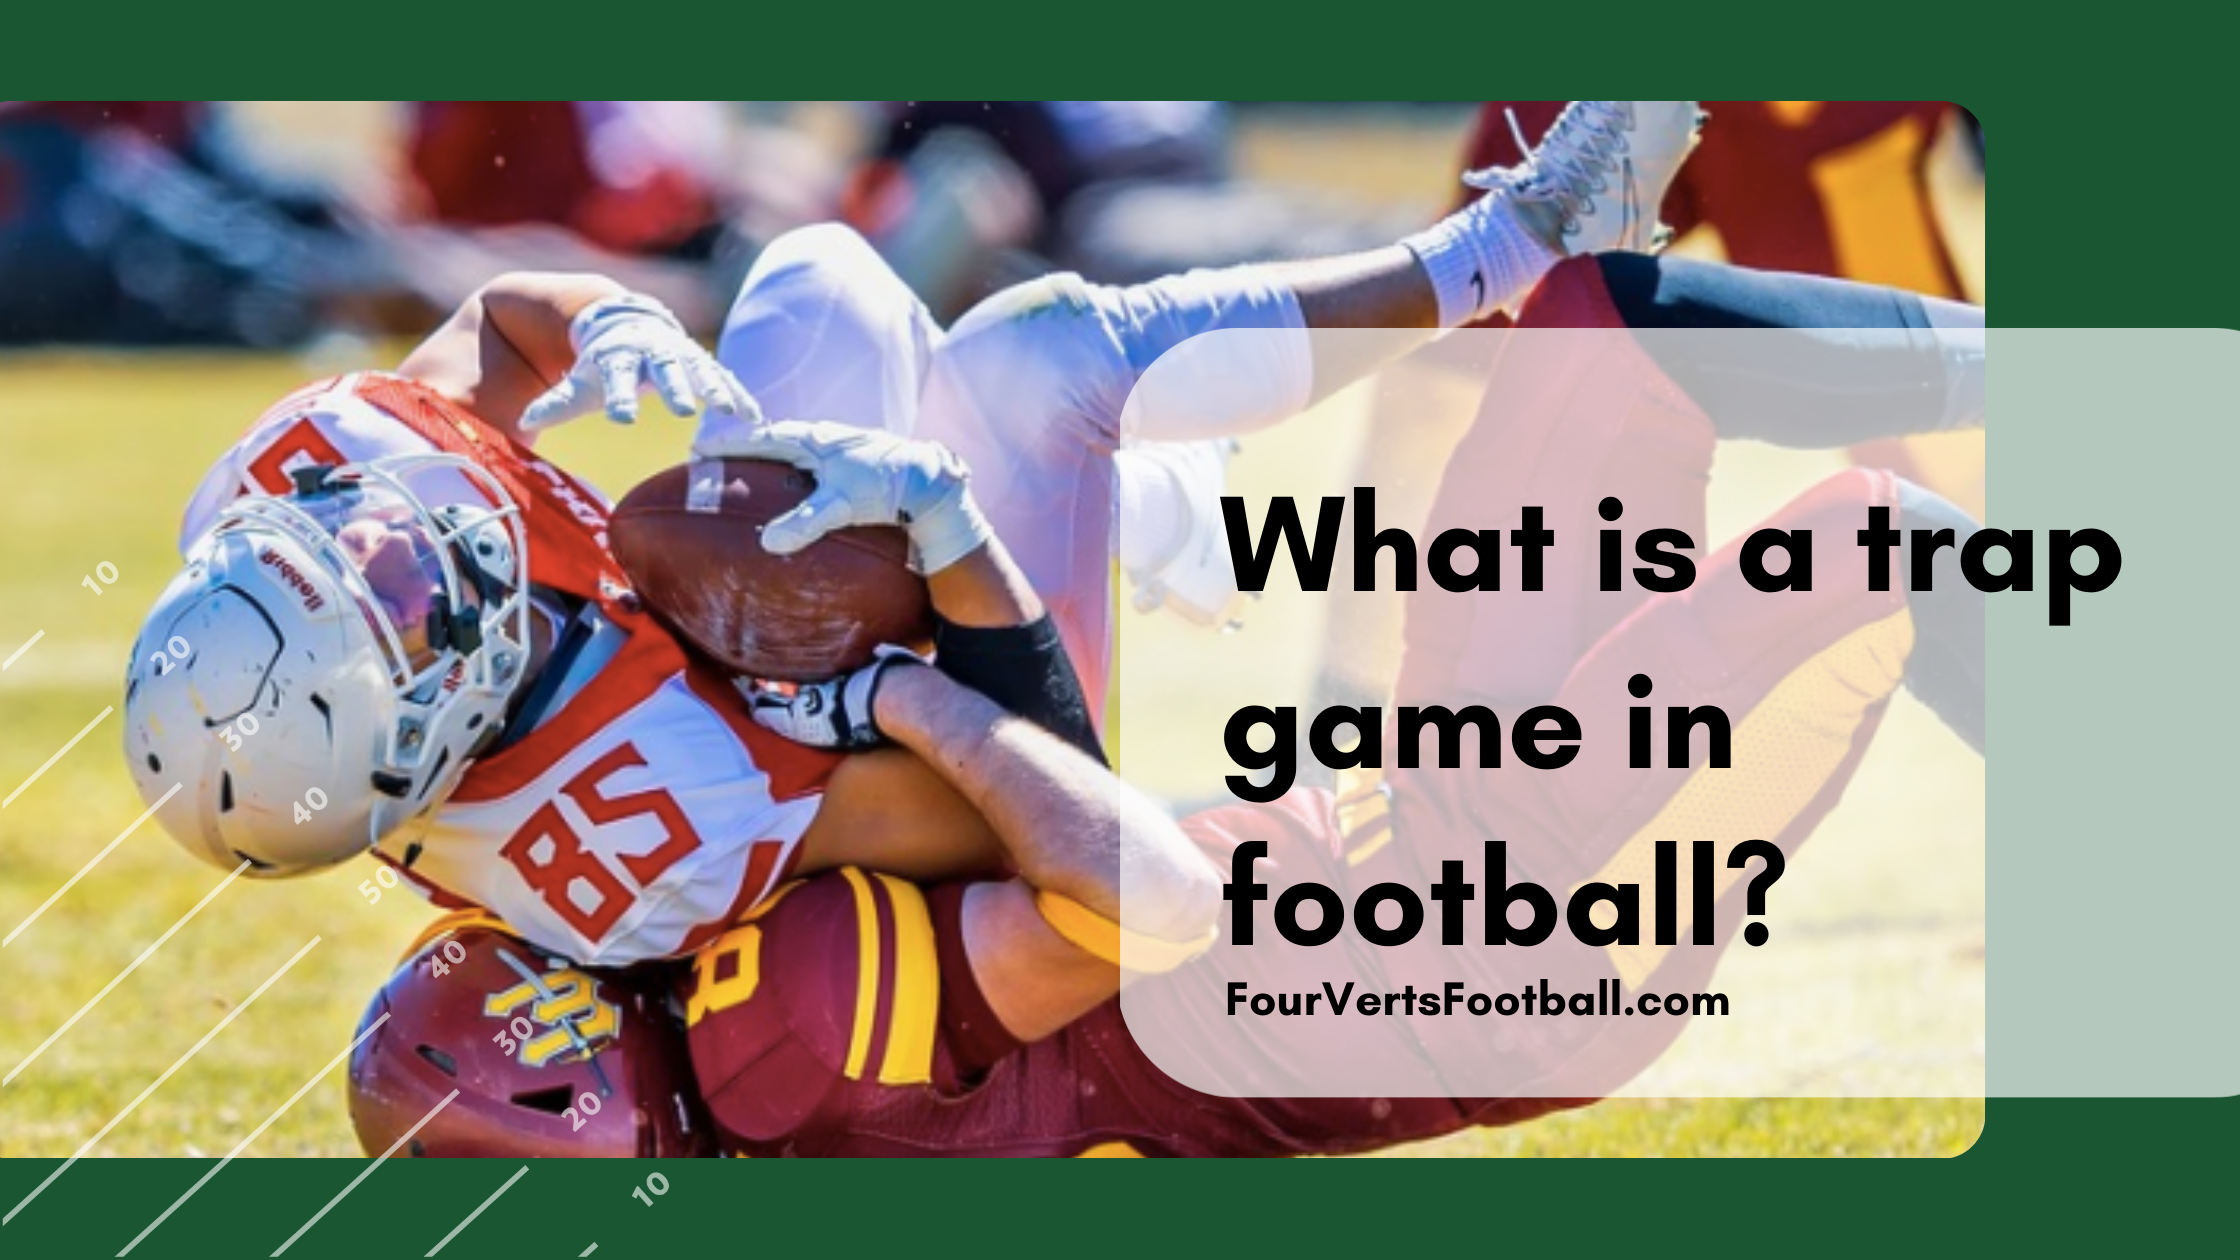 What is a trap game in football